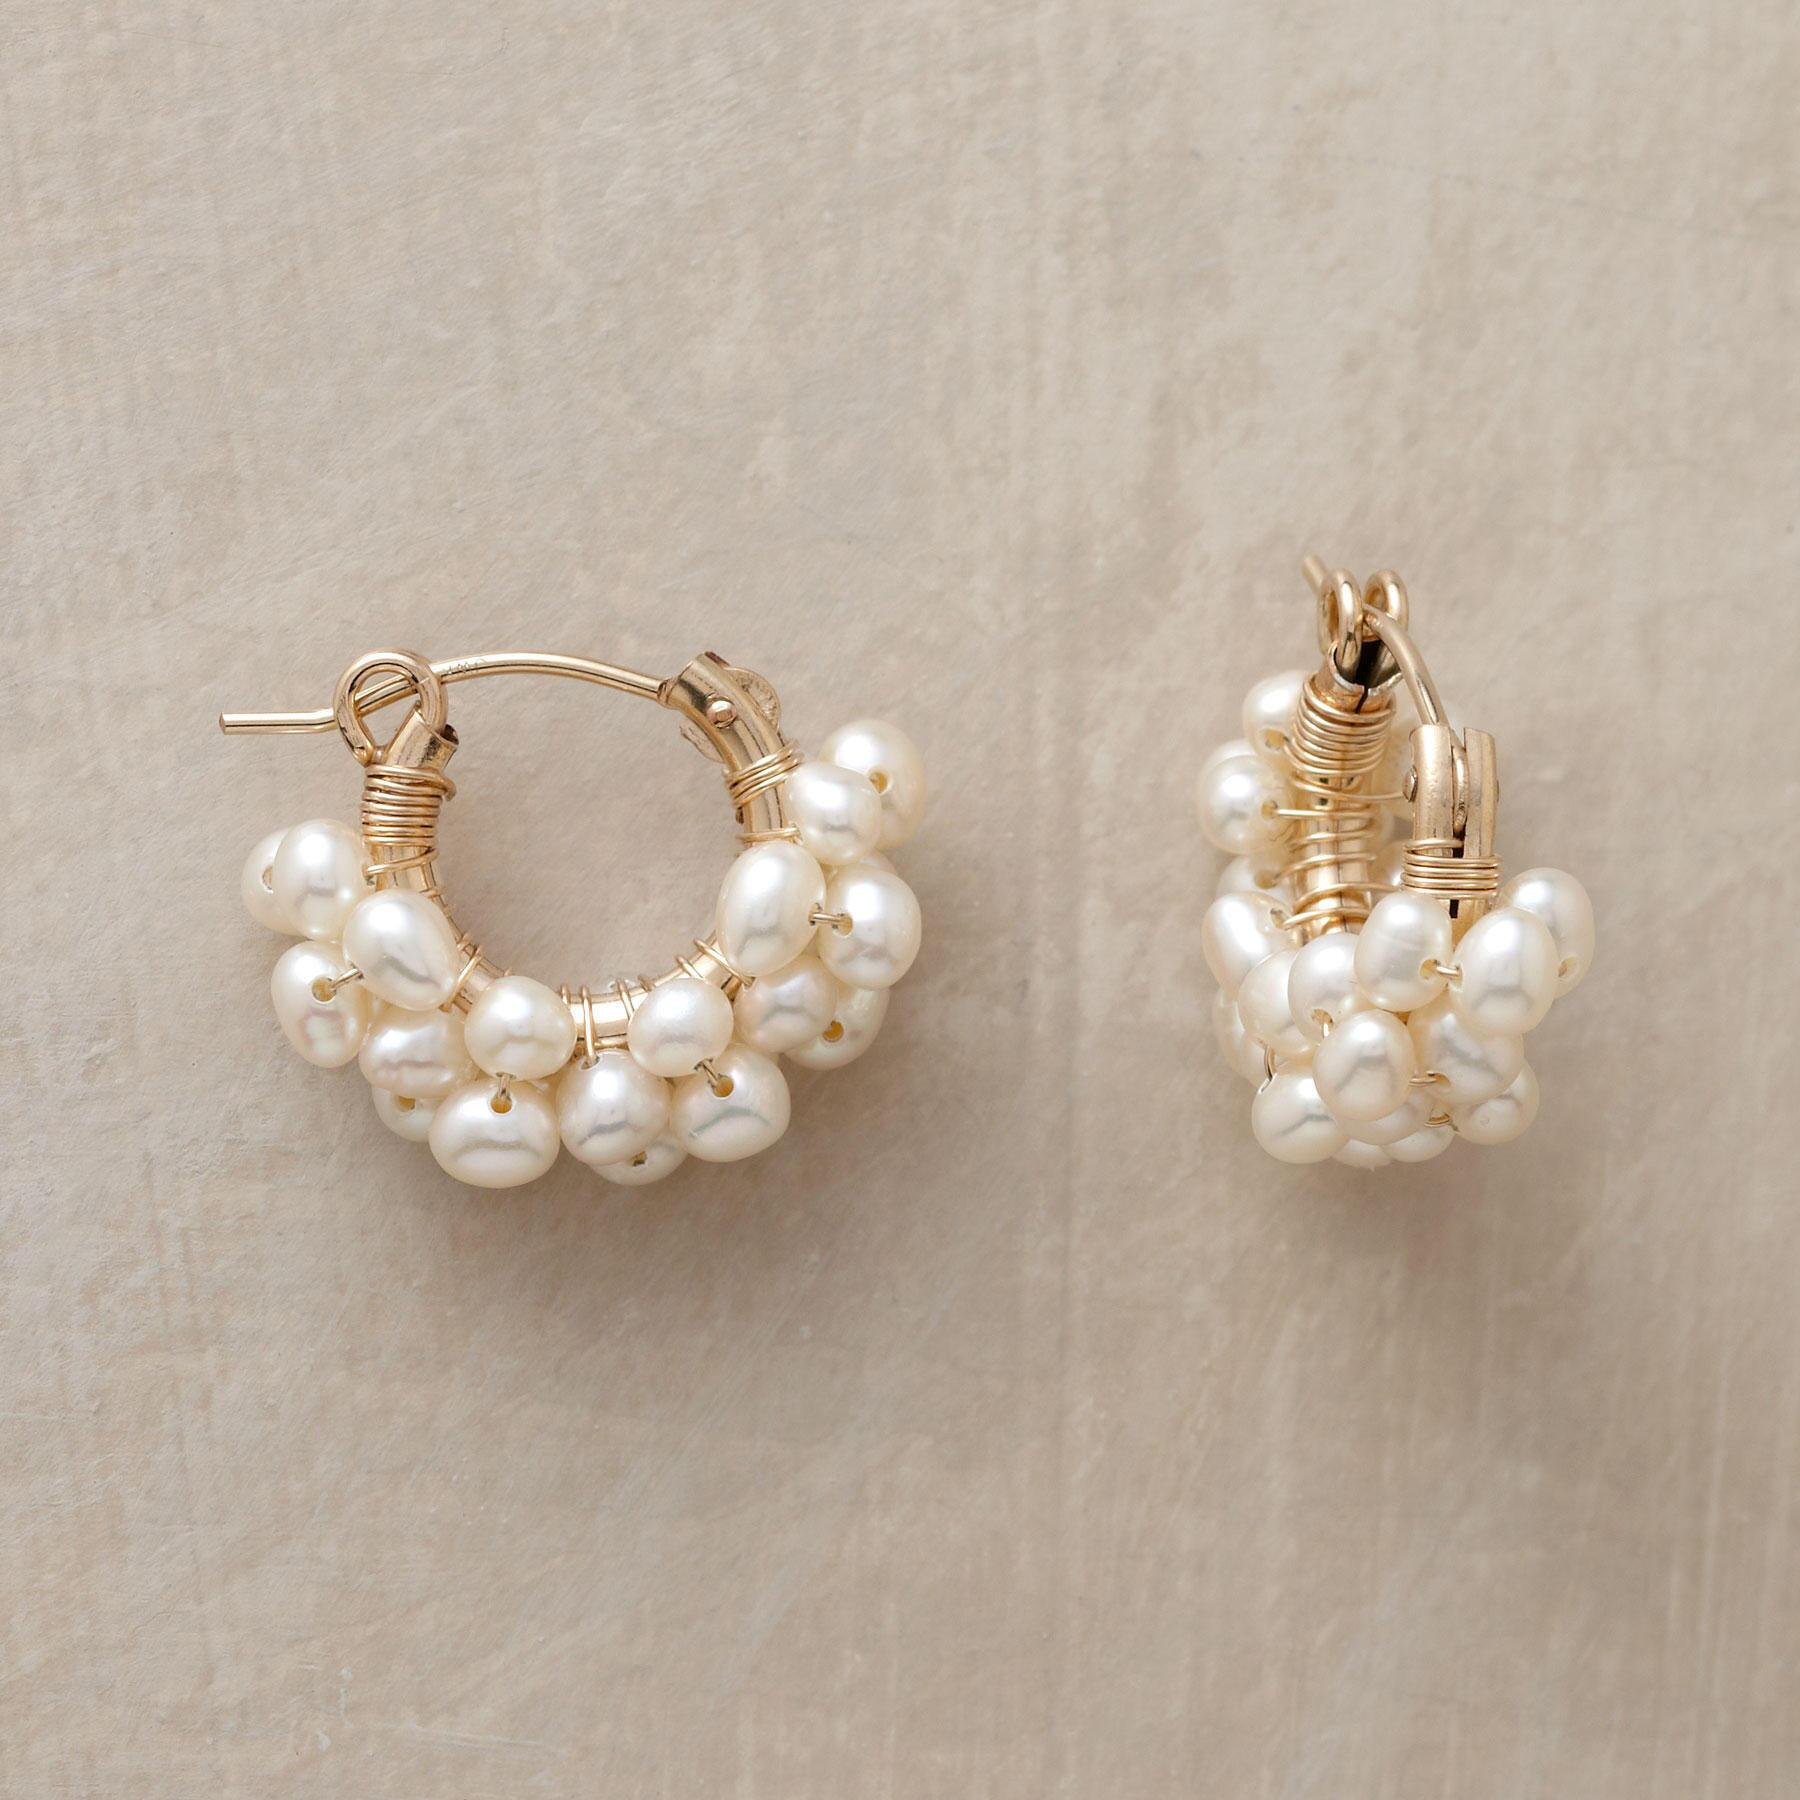 14KT GOLD FILLED FROTH OF PEARLS HOOPS: View 1